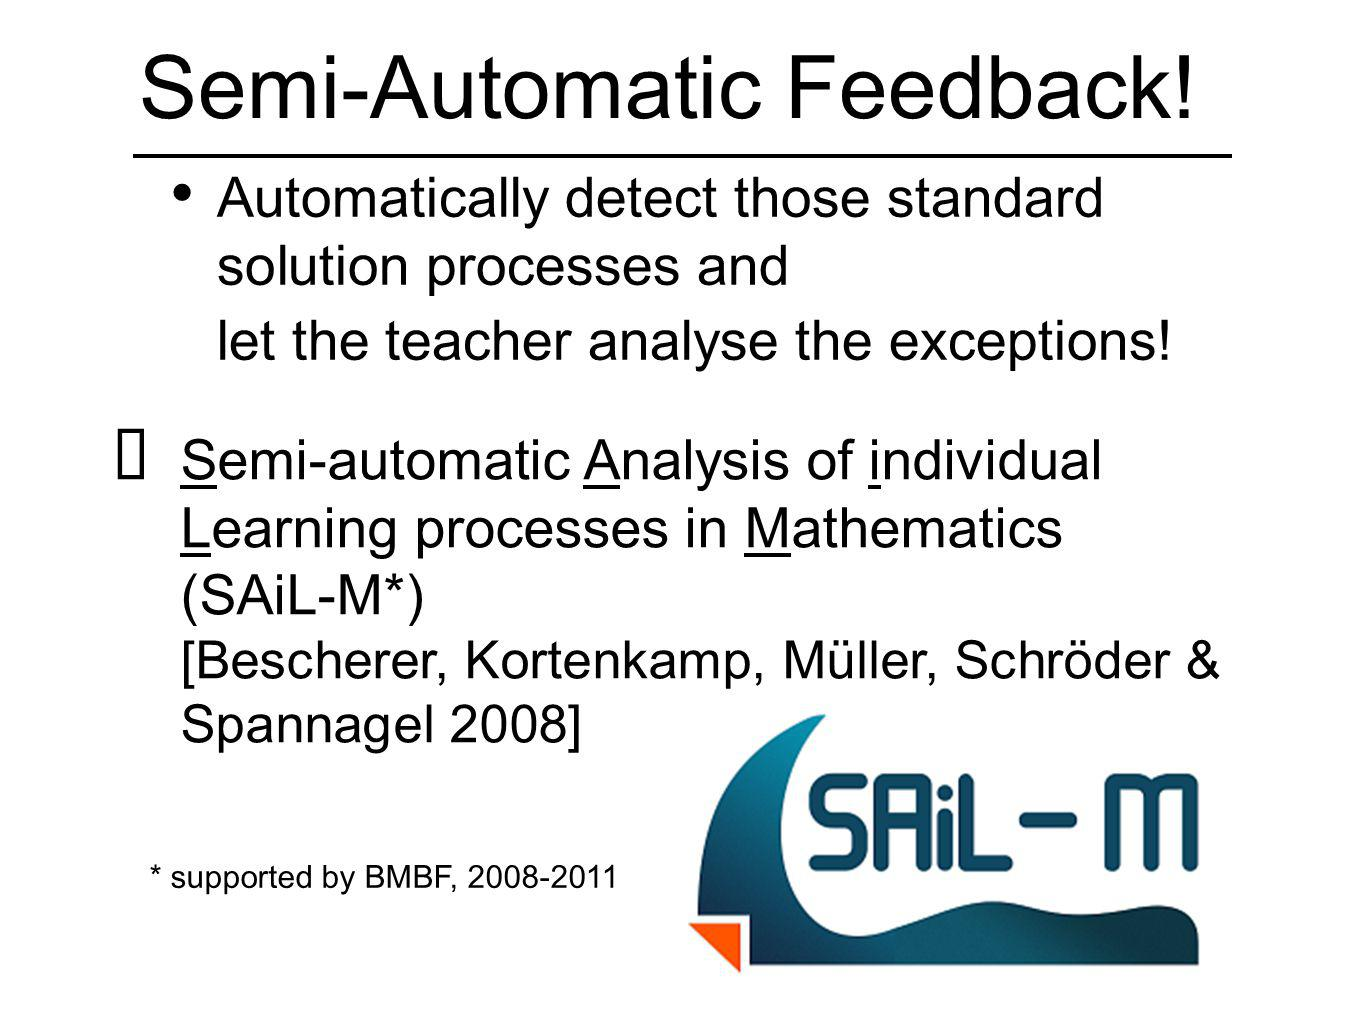 Automatically detect those standard solution processes and let the teacher analyse the exceptions! Semi-automatic Analysis of individual Learning proc